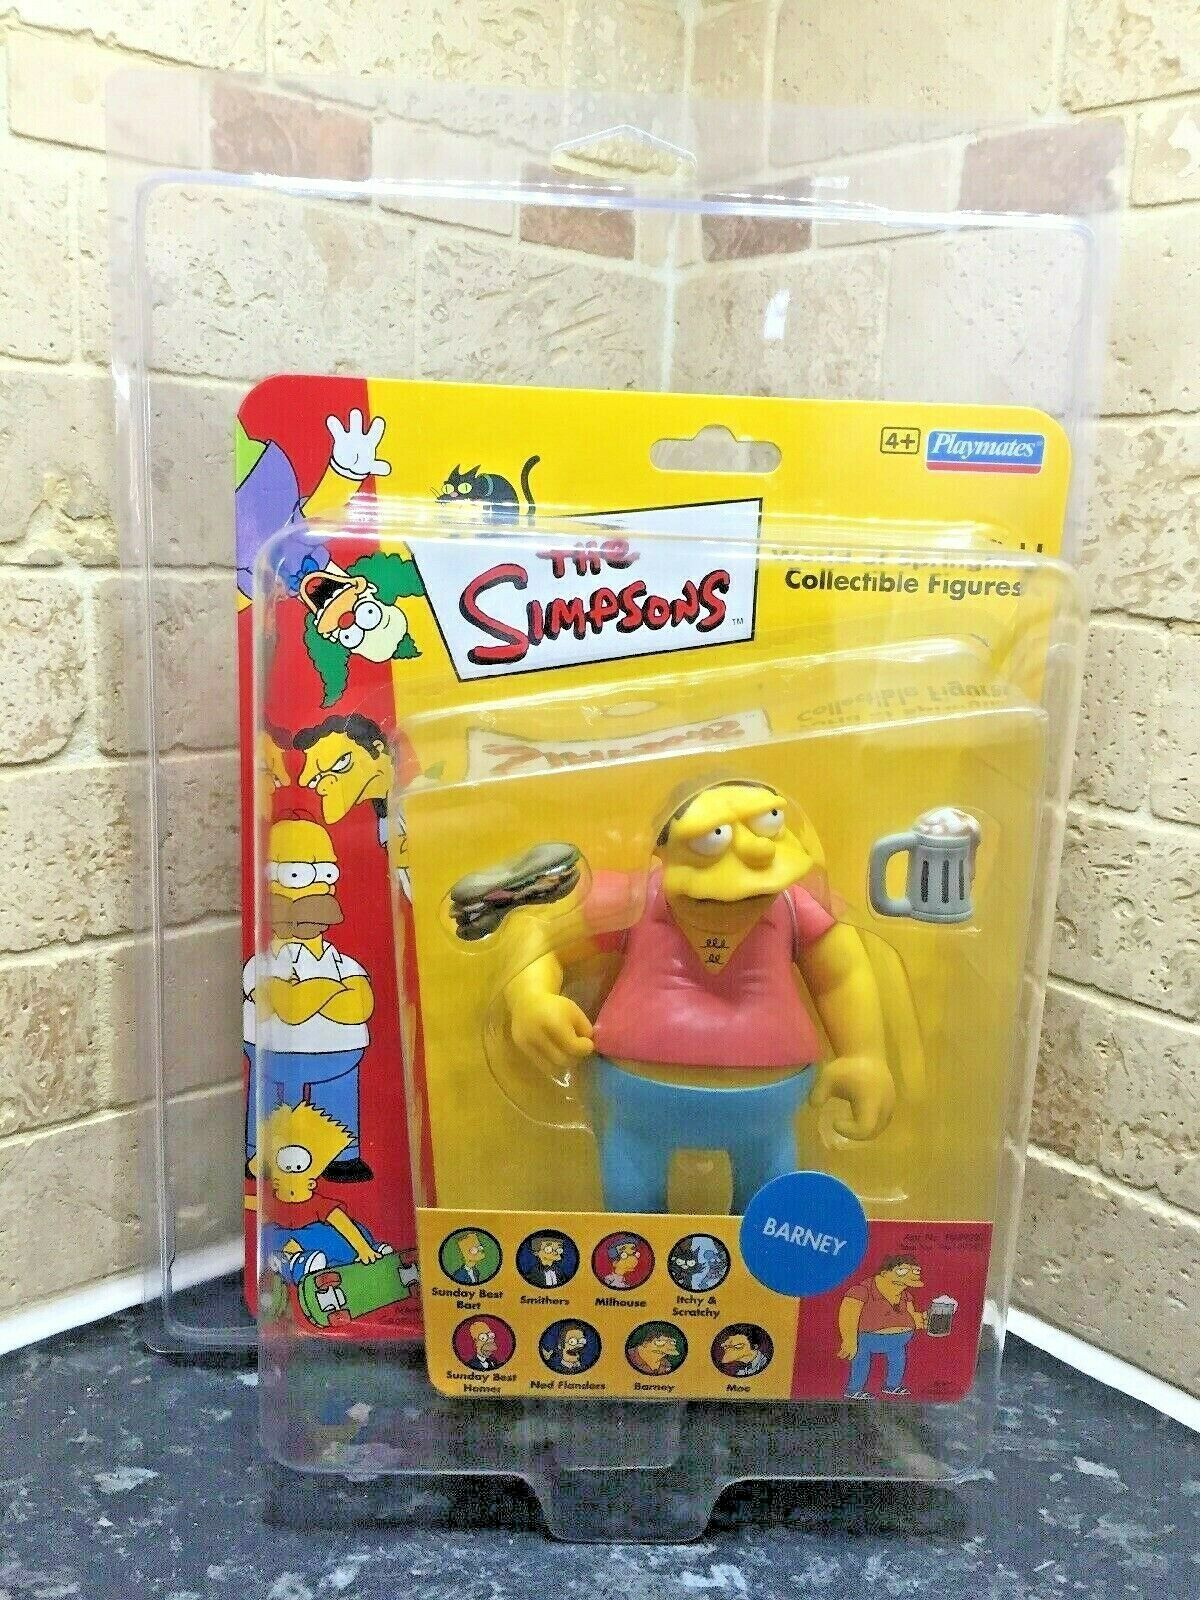 Uk Exclusive The Simpsons Barney WOS Vivid Imaginations Figure Zoloworld Case